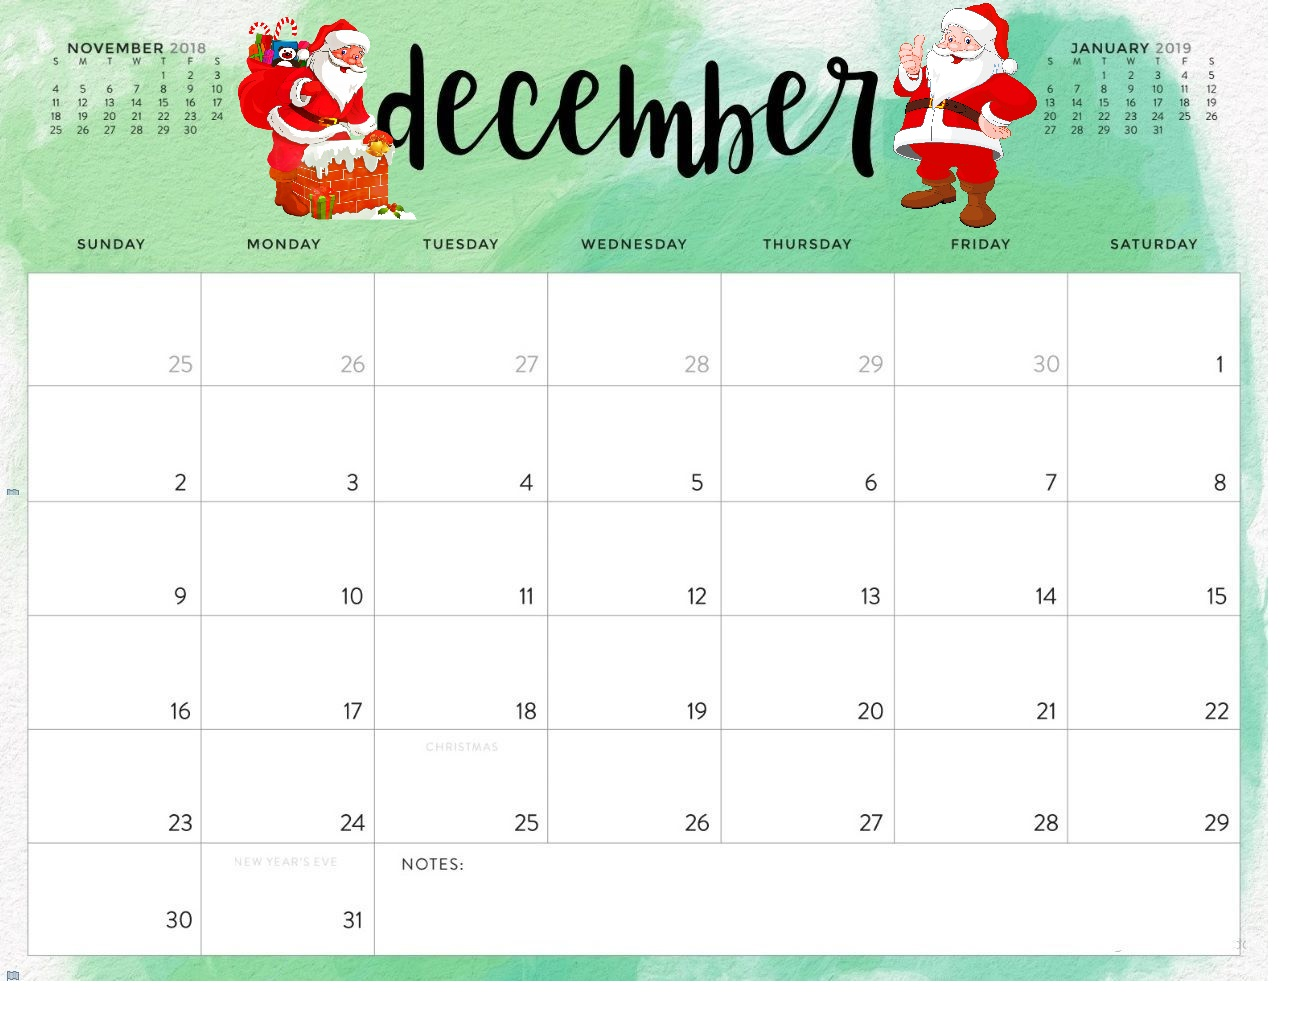 When is Christmas This Year